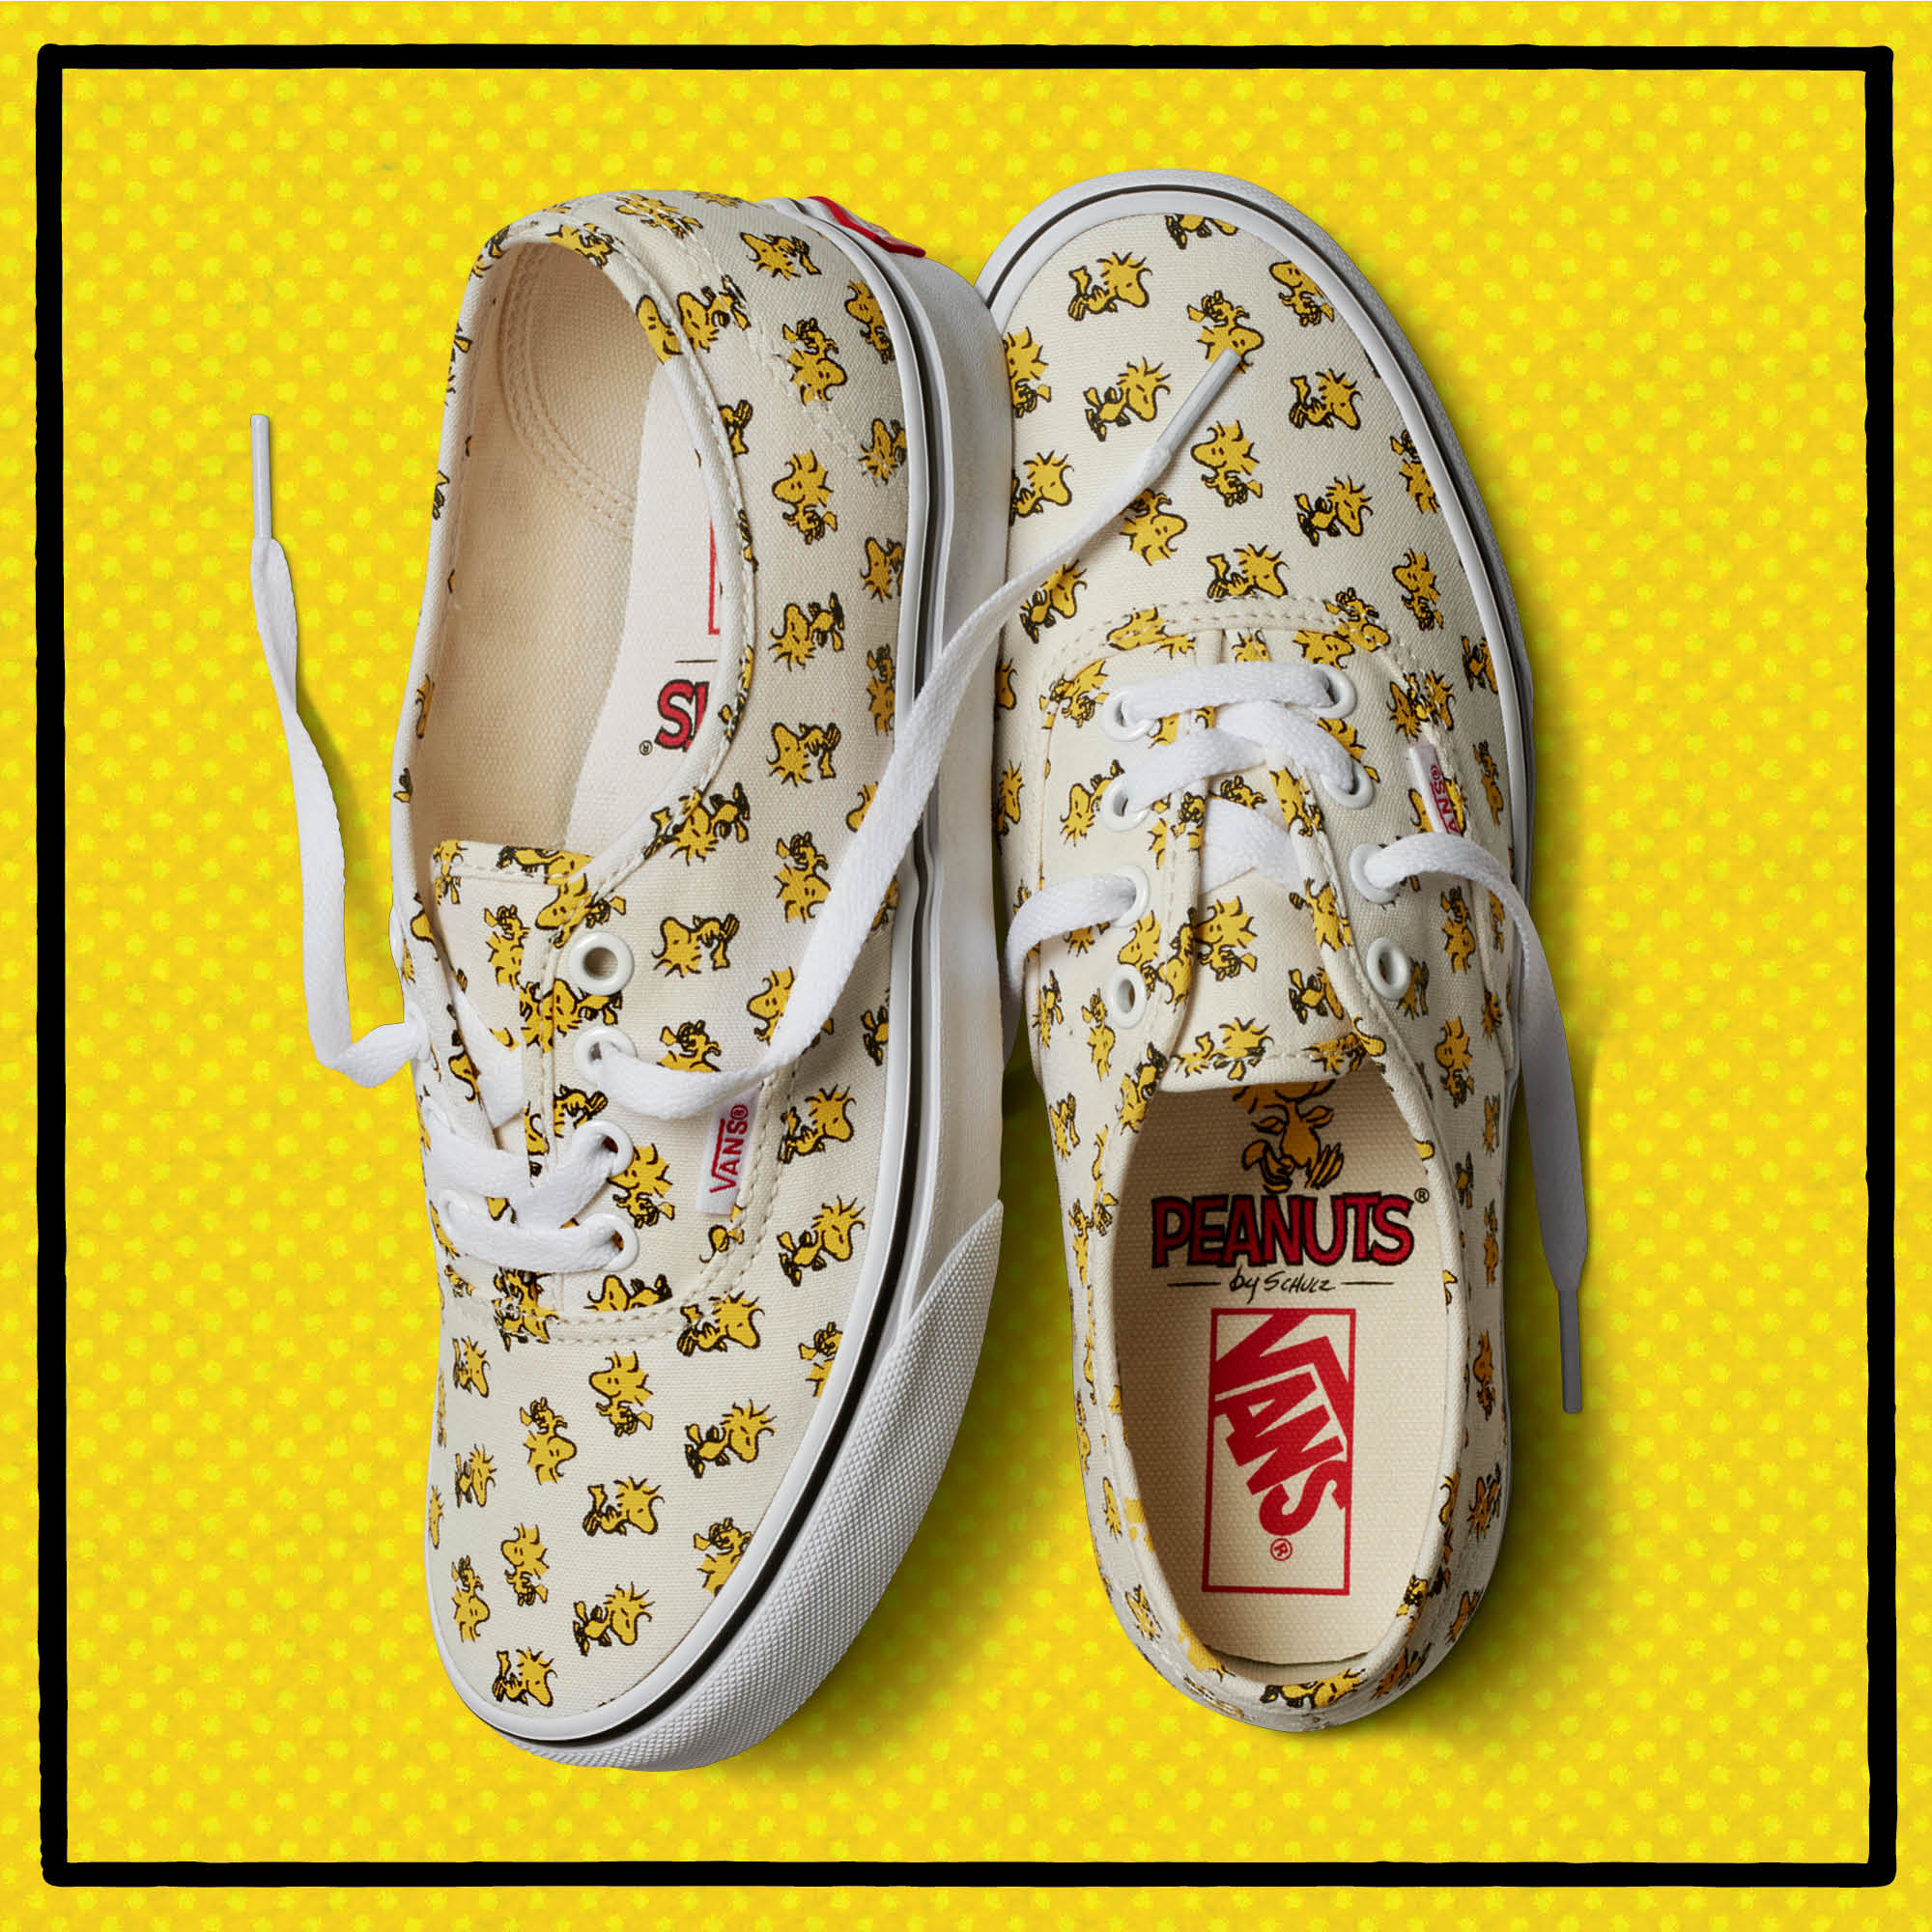 3c5b3e64a1 Show us how you style the Vans X Peanuts collection by tagging us on social  media   littleburgundyshoes.  vansXpeanuts